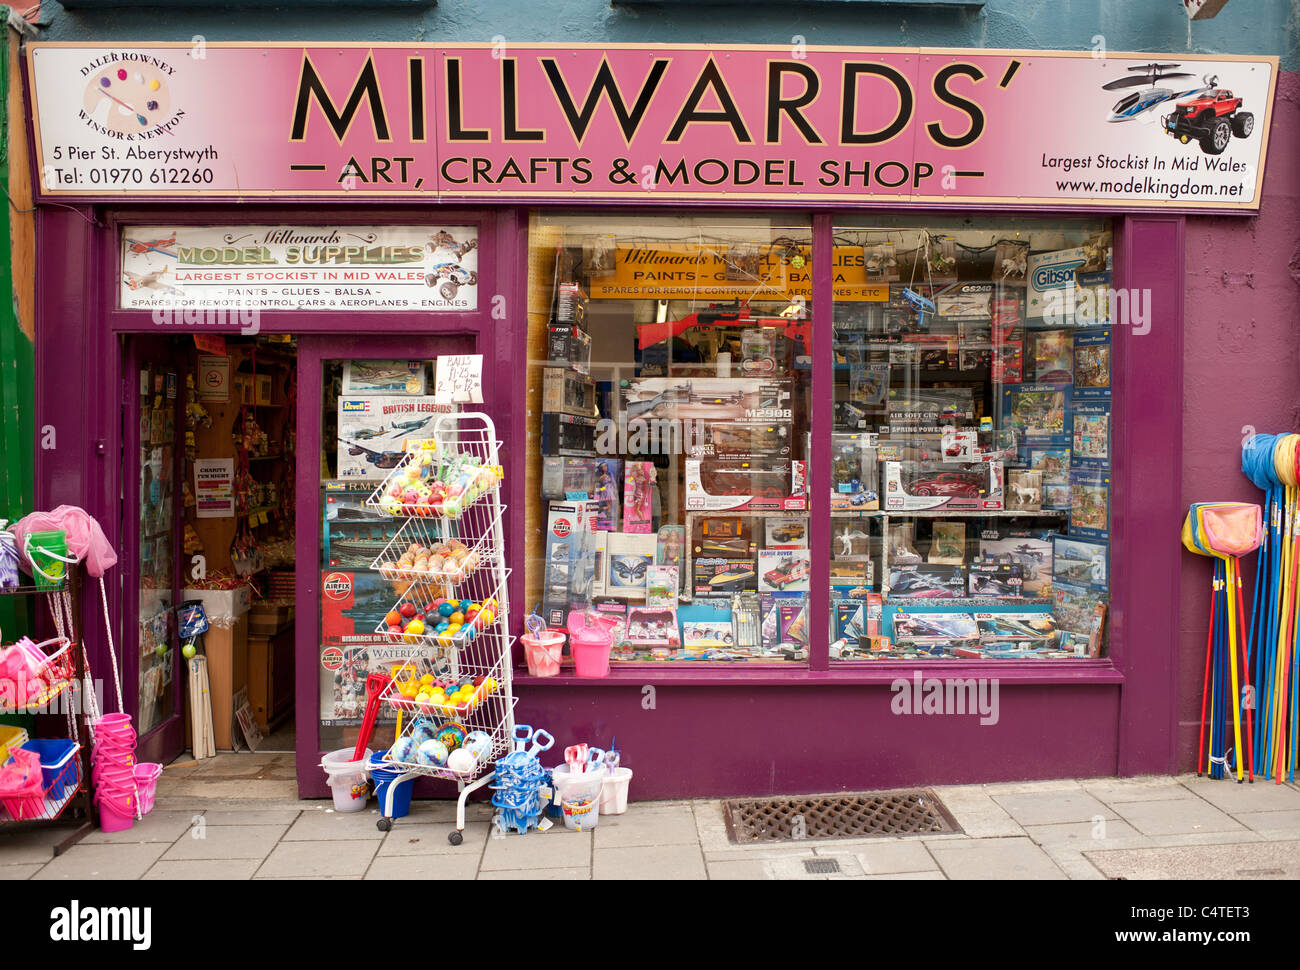 Millwards A Small Independent Arts Supplies Models And Craft Shop